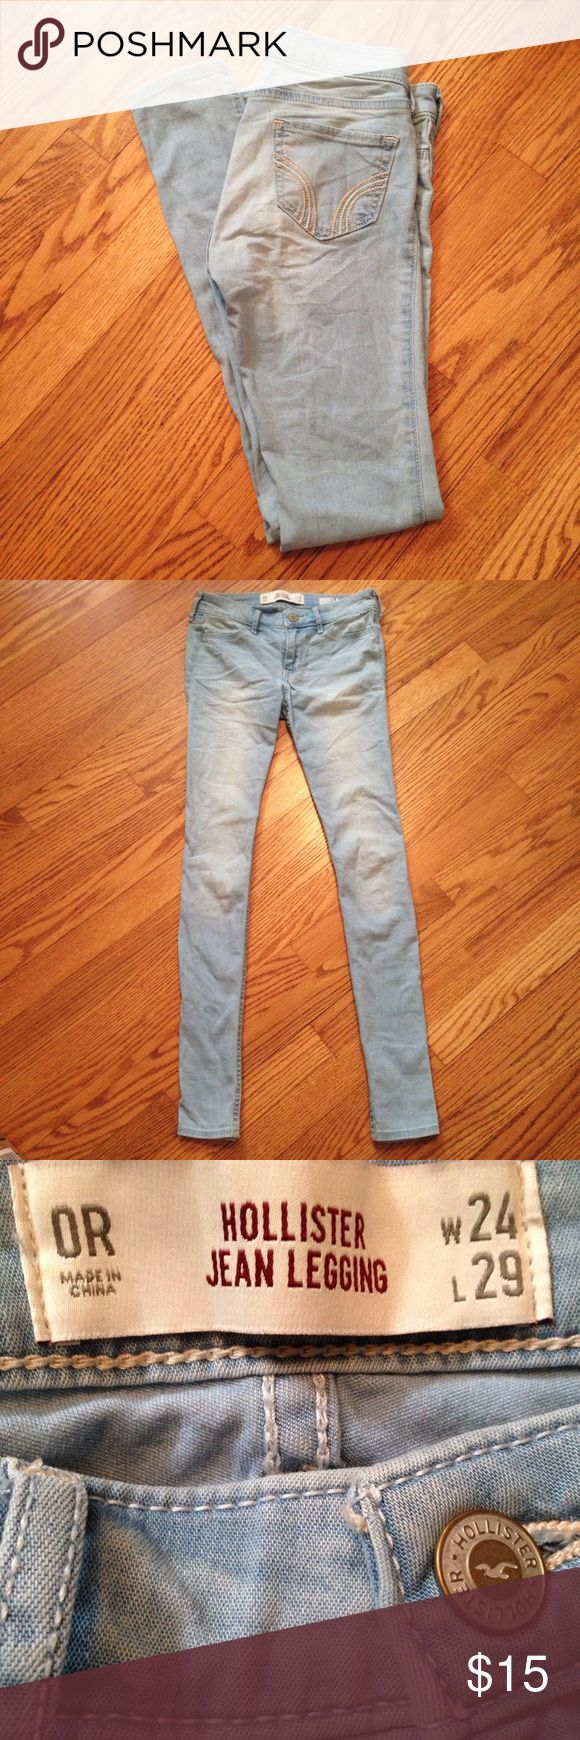 Hollister Light Blue Skinny Jeans Light wash Hollister soft jean leggings. Used but still in good condition. No rips, holes or stains. Fit true to size. Hollister Jeans Skinny